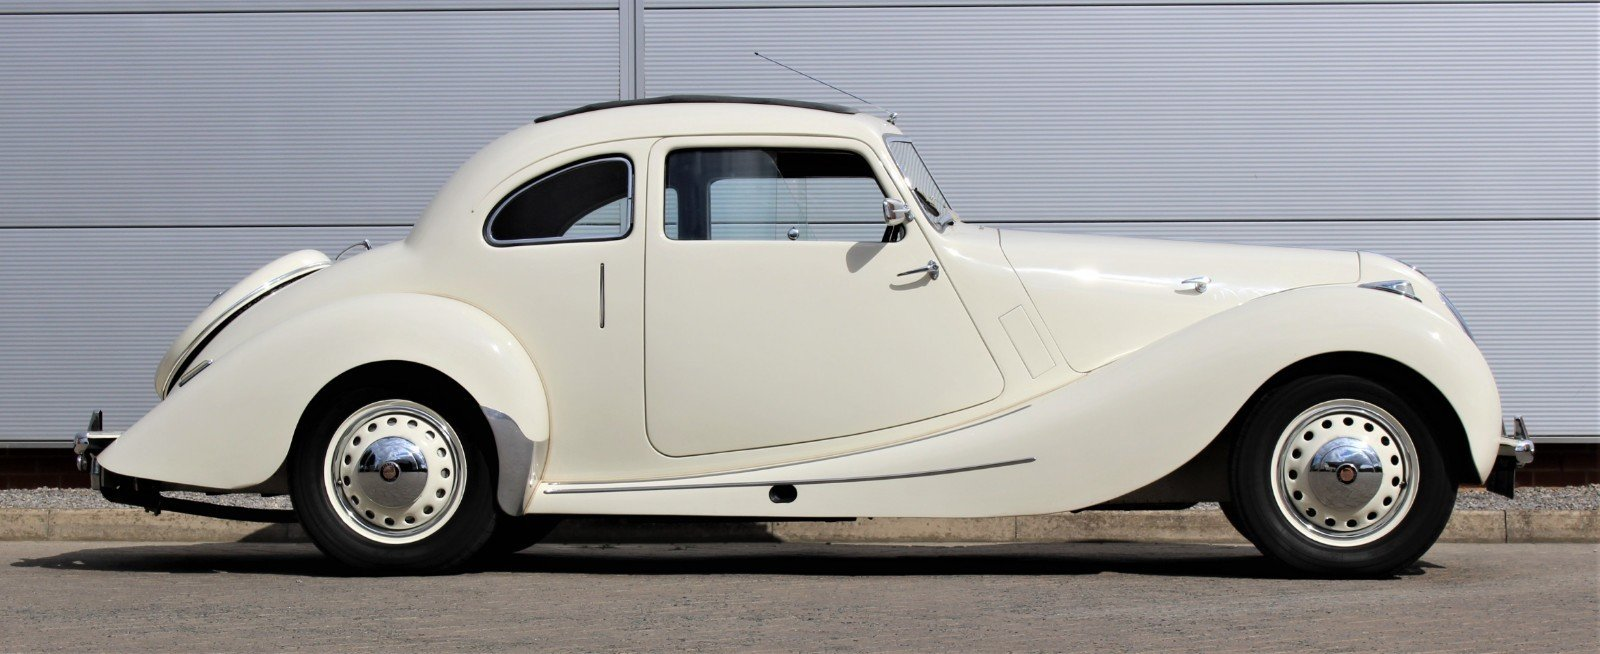 1949 Bristol 400 - Show Stopper  For Sale (picture 2 of 6)